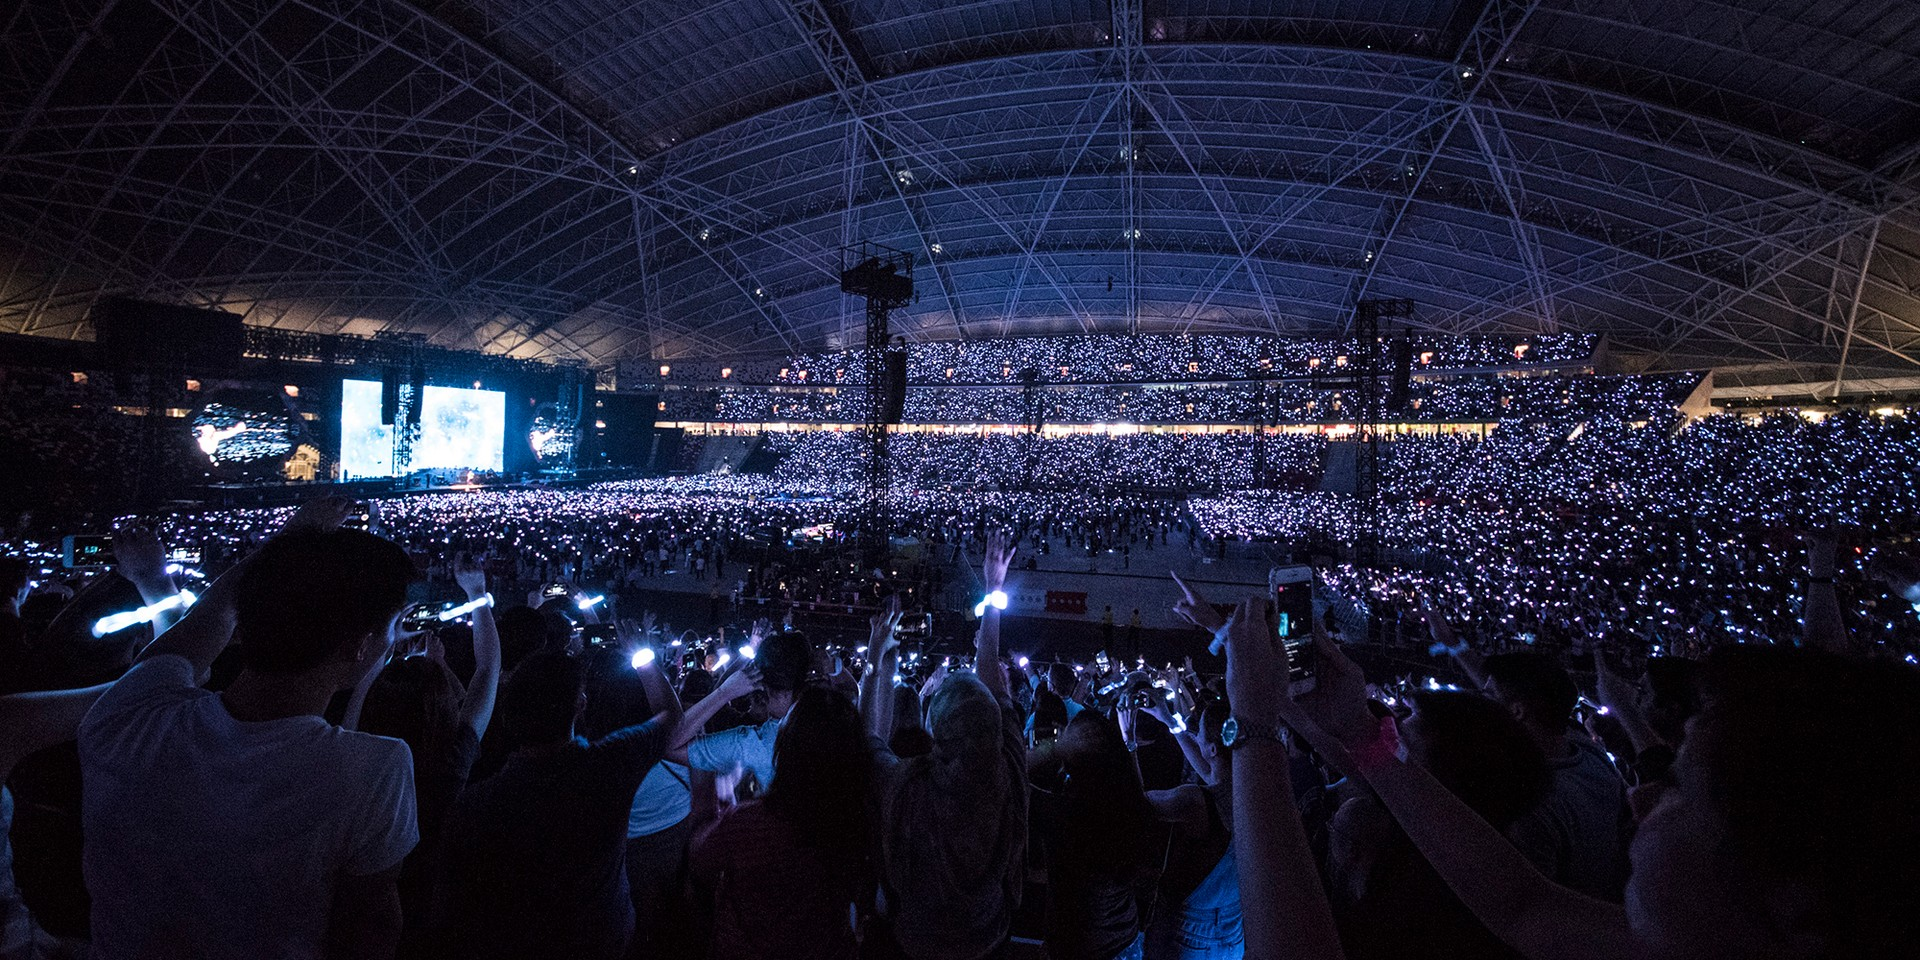 7 of the biggest concerts held in Singapore